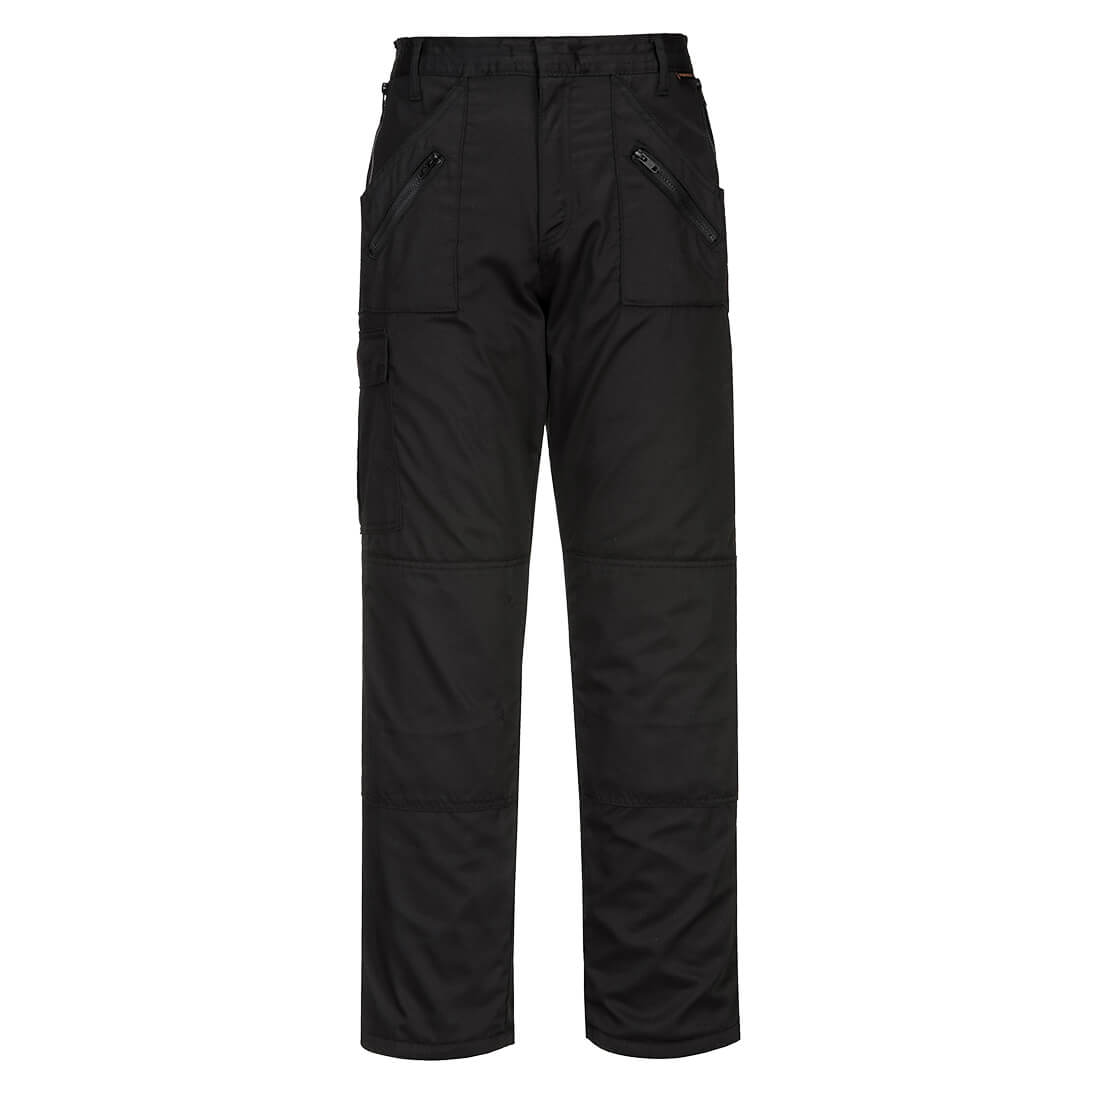 Lined Action Trousers Black LR